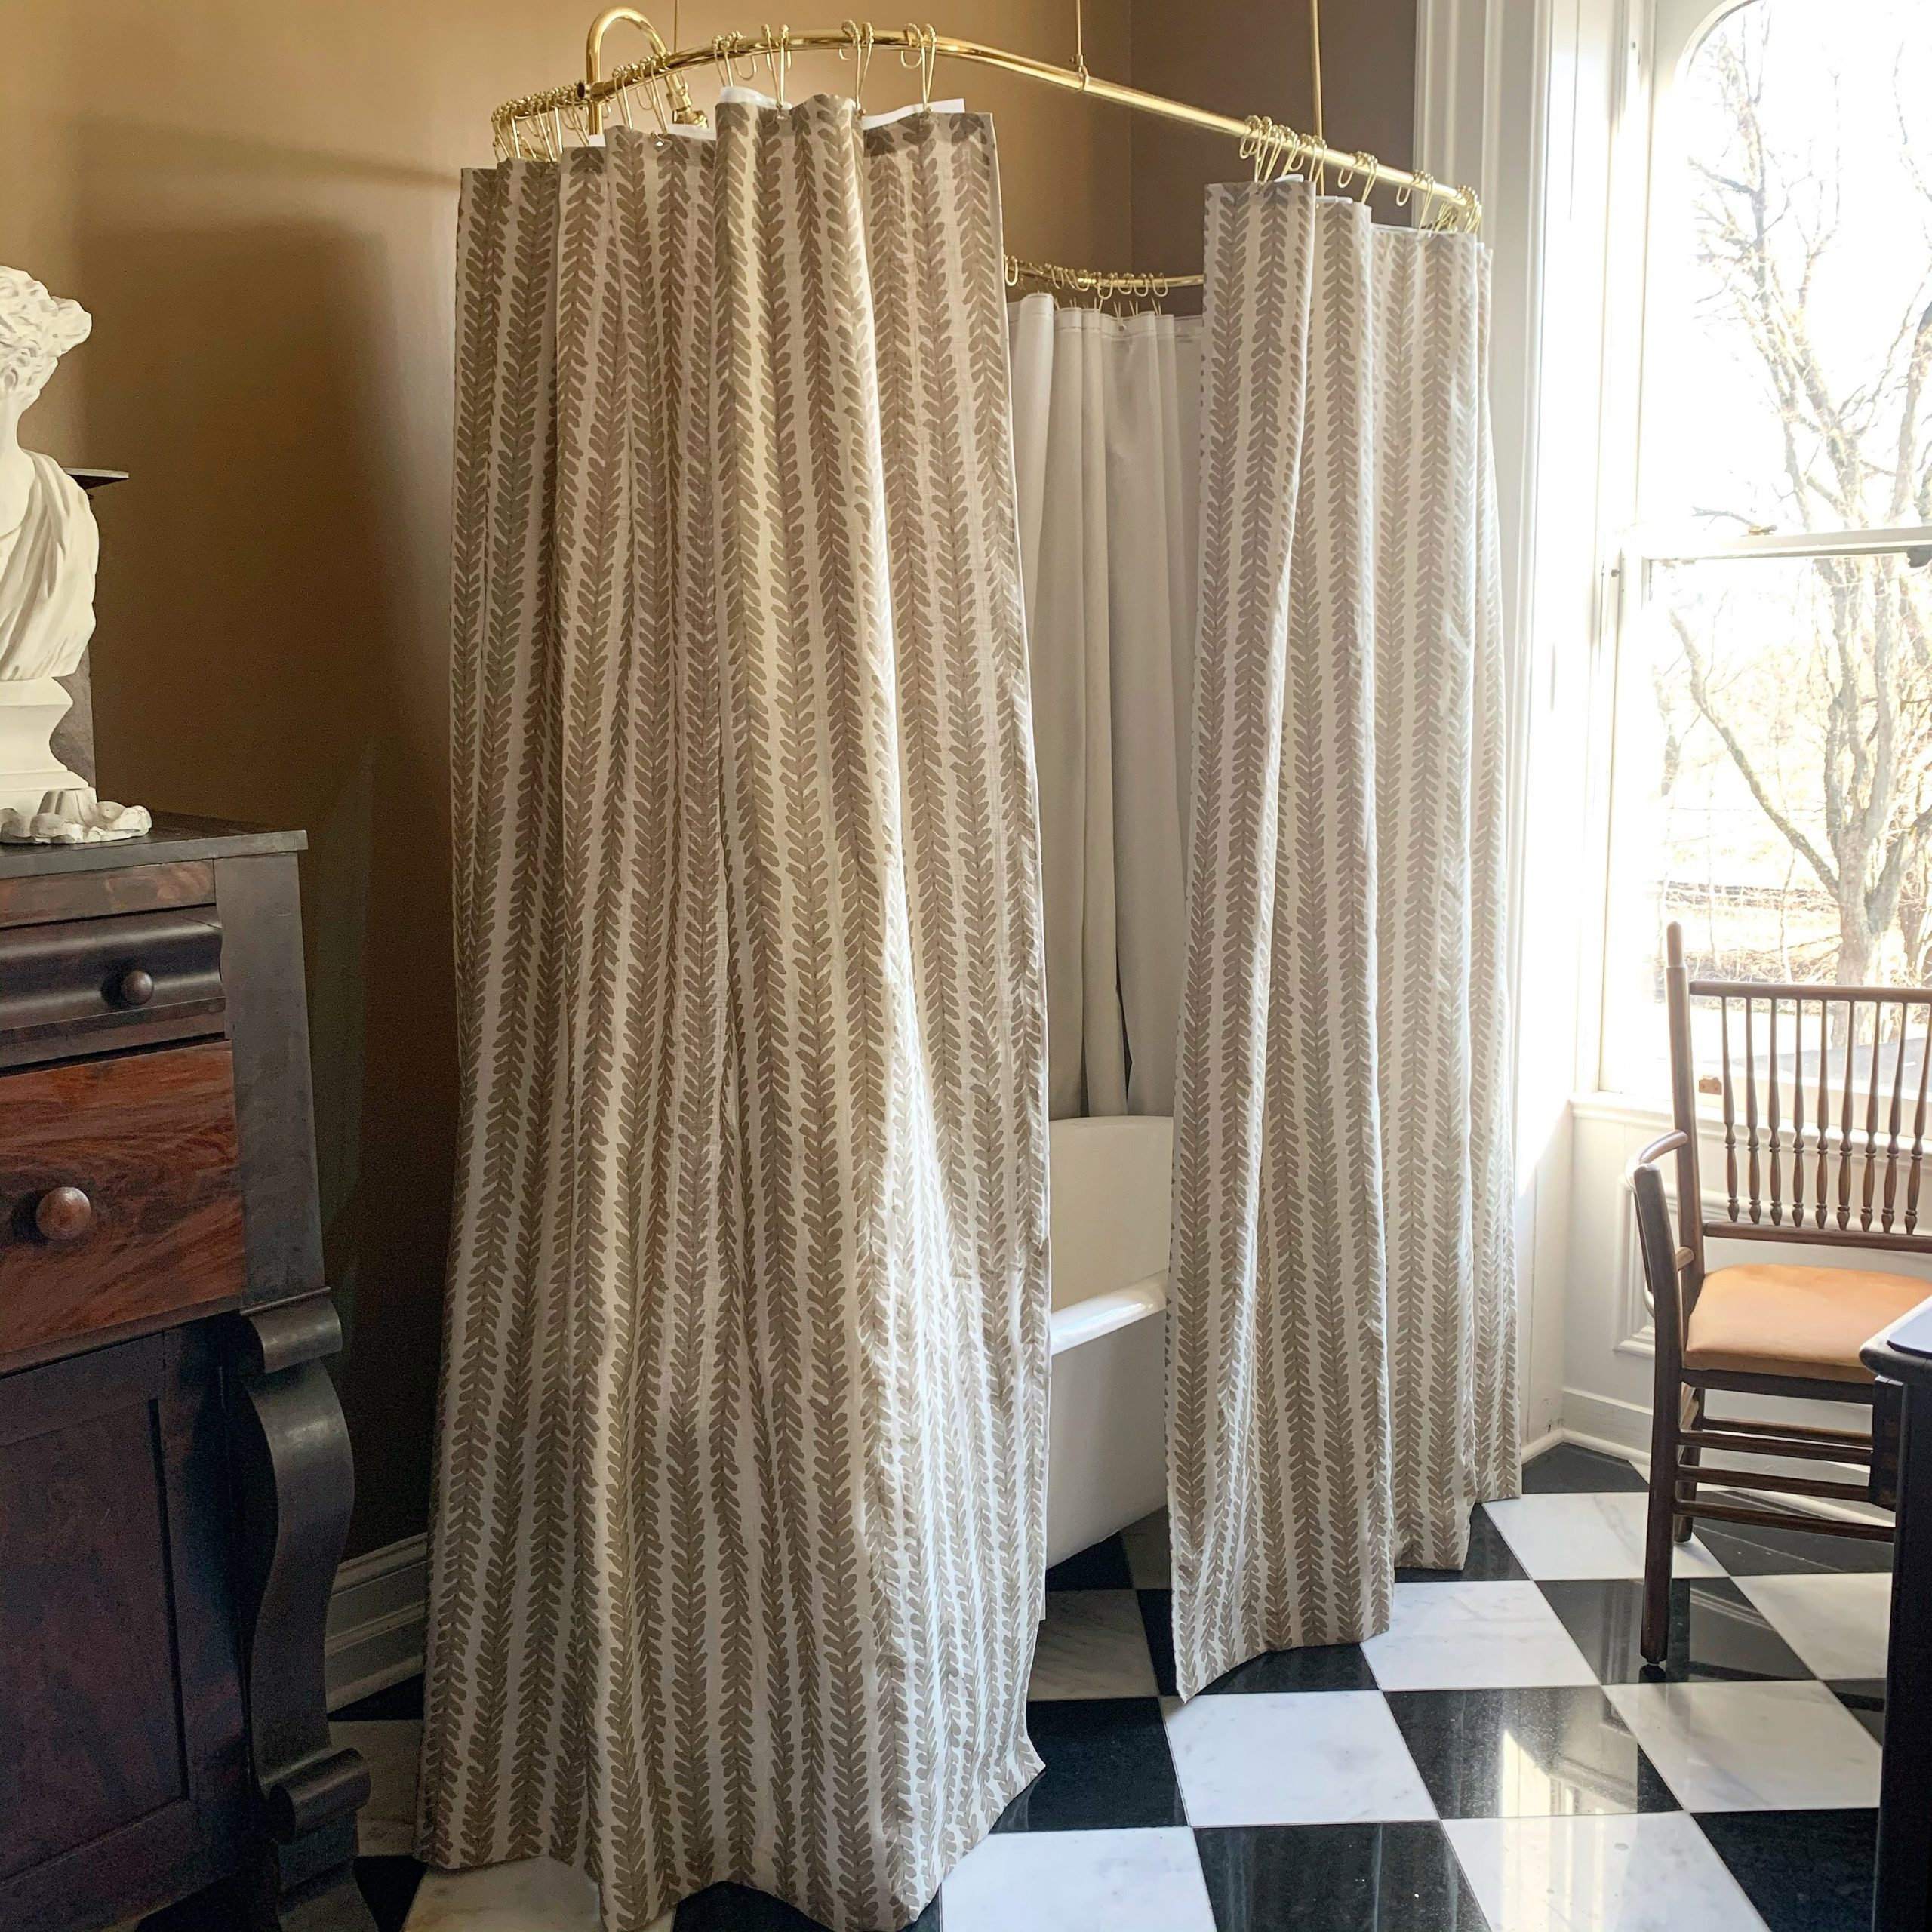 Match the Shower Curtain to the Walls